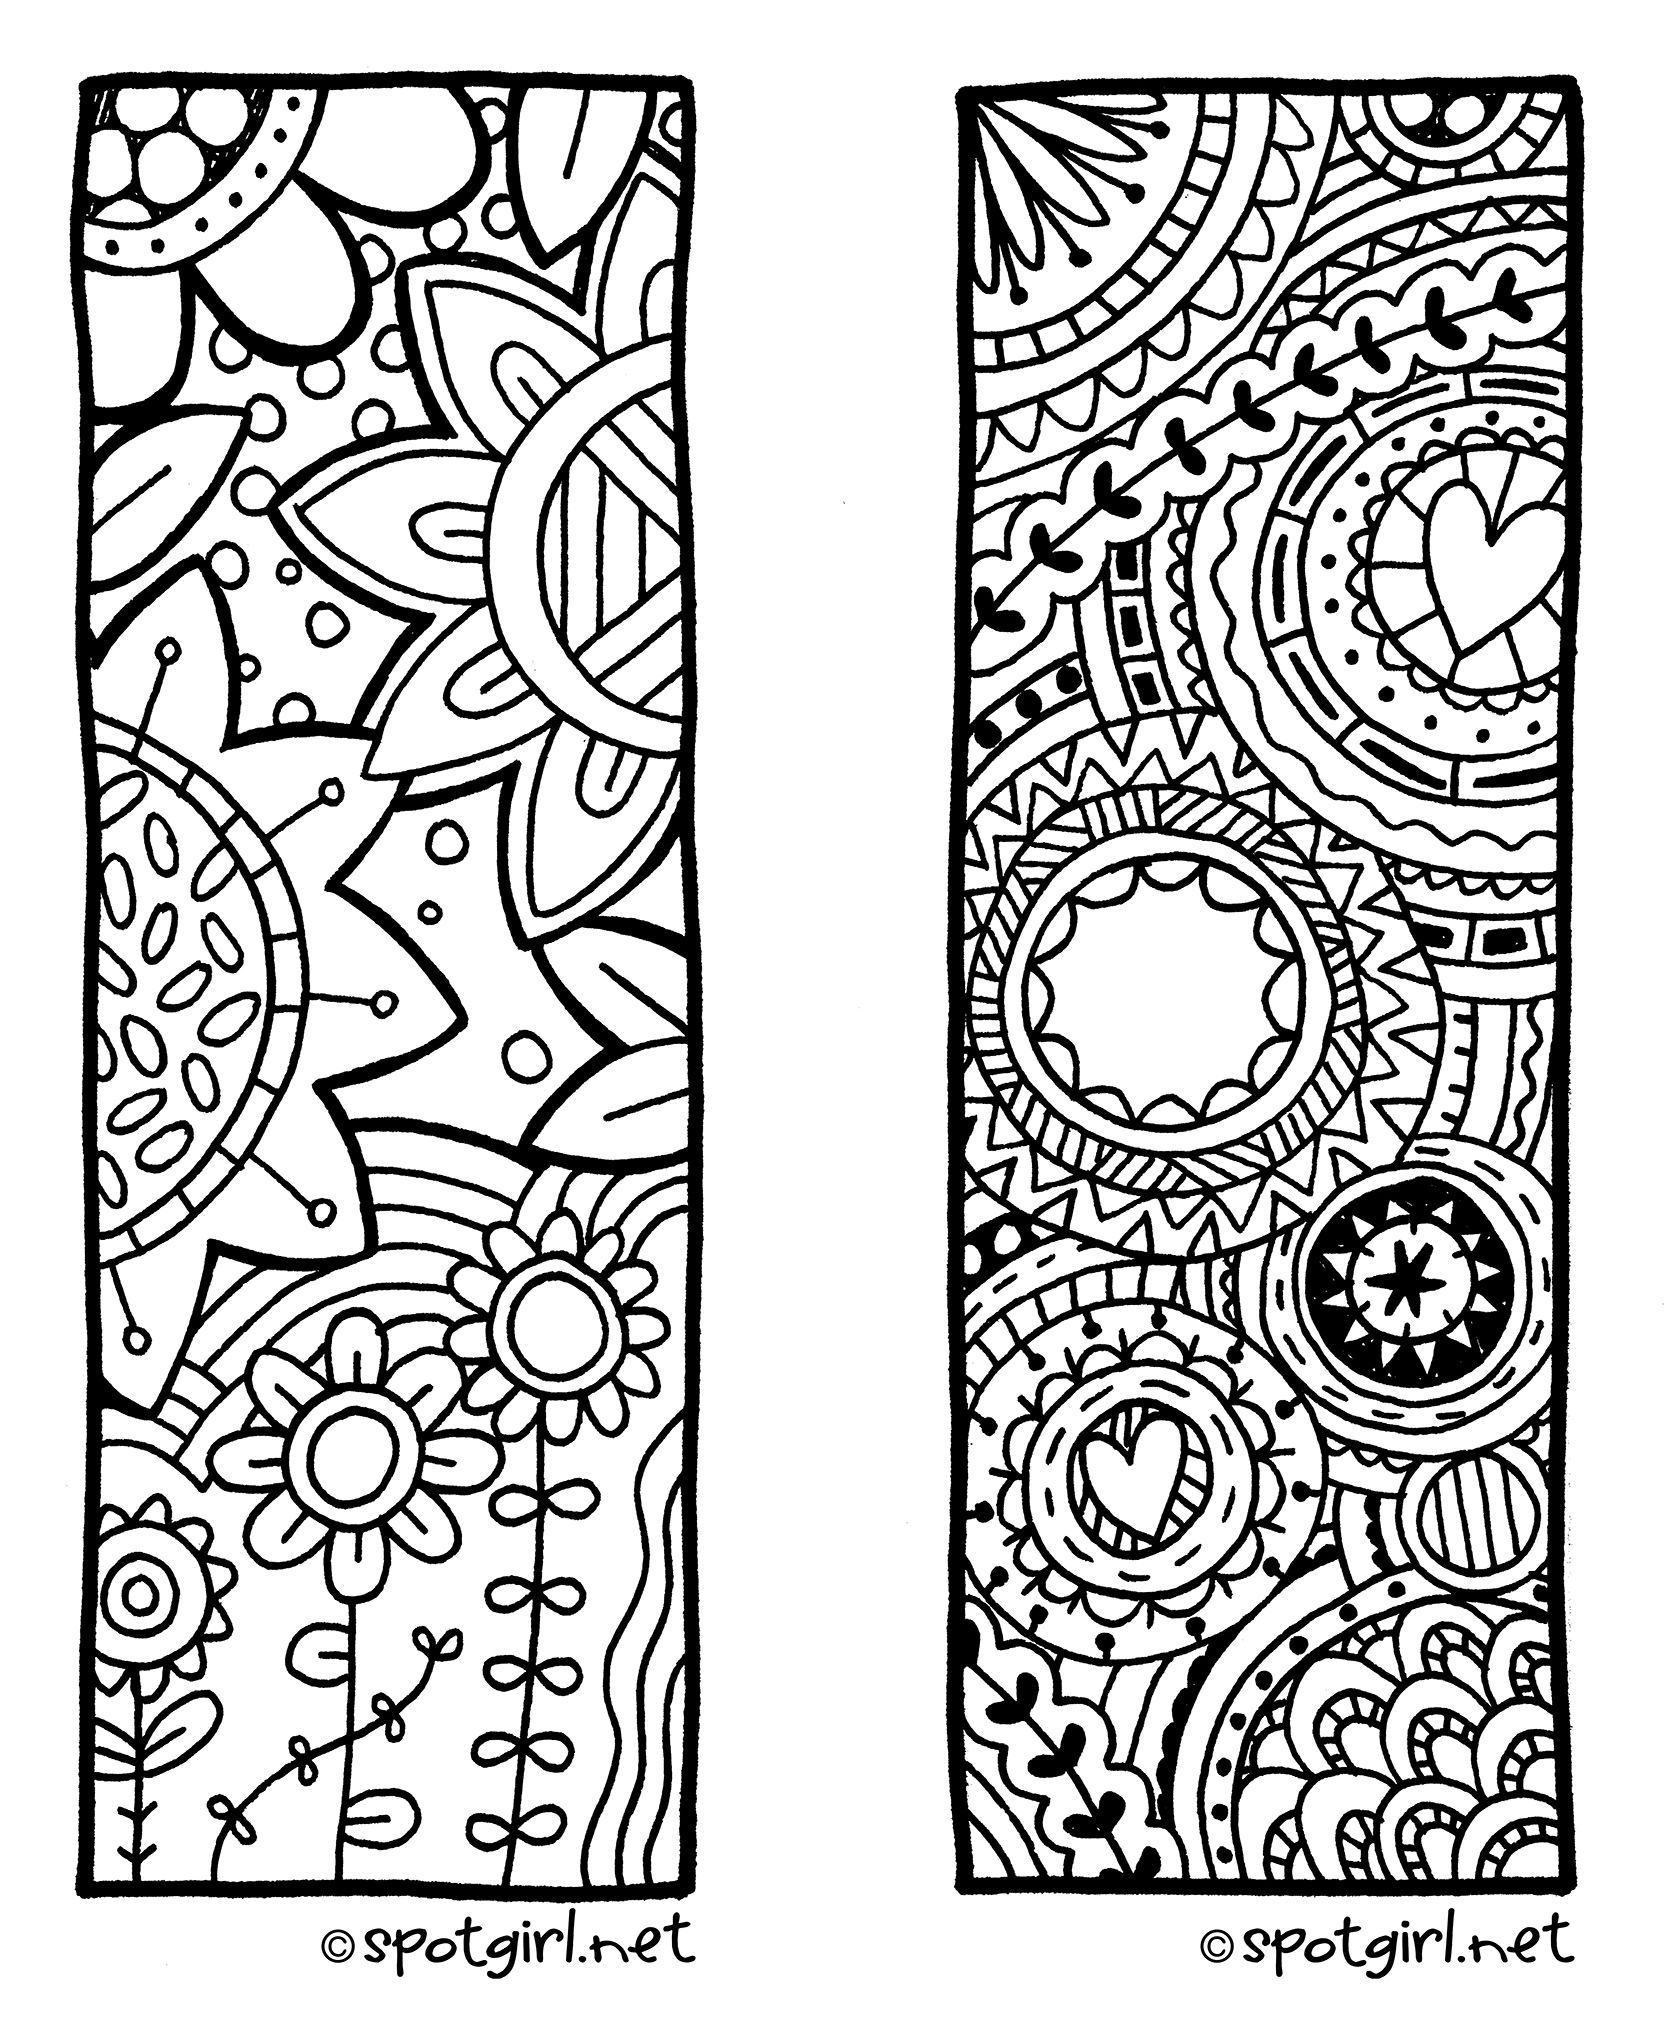 Libros Blogspot Zentangle Bookmark Printable From Spotgirl Hotcakes Blogspot